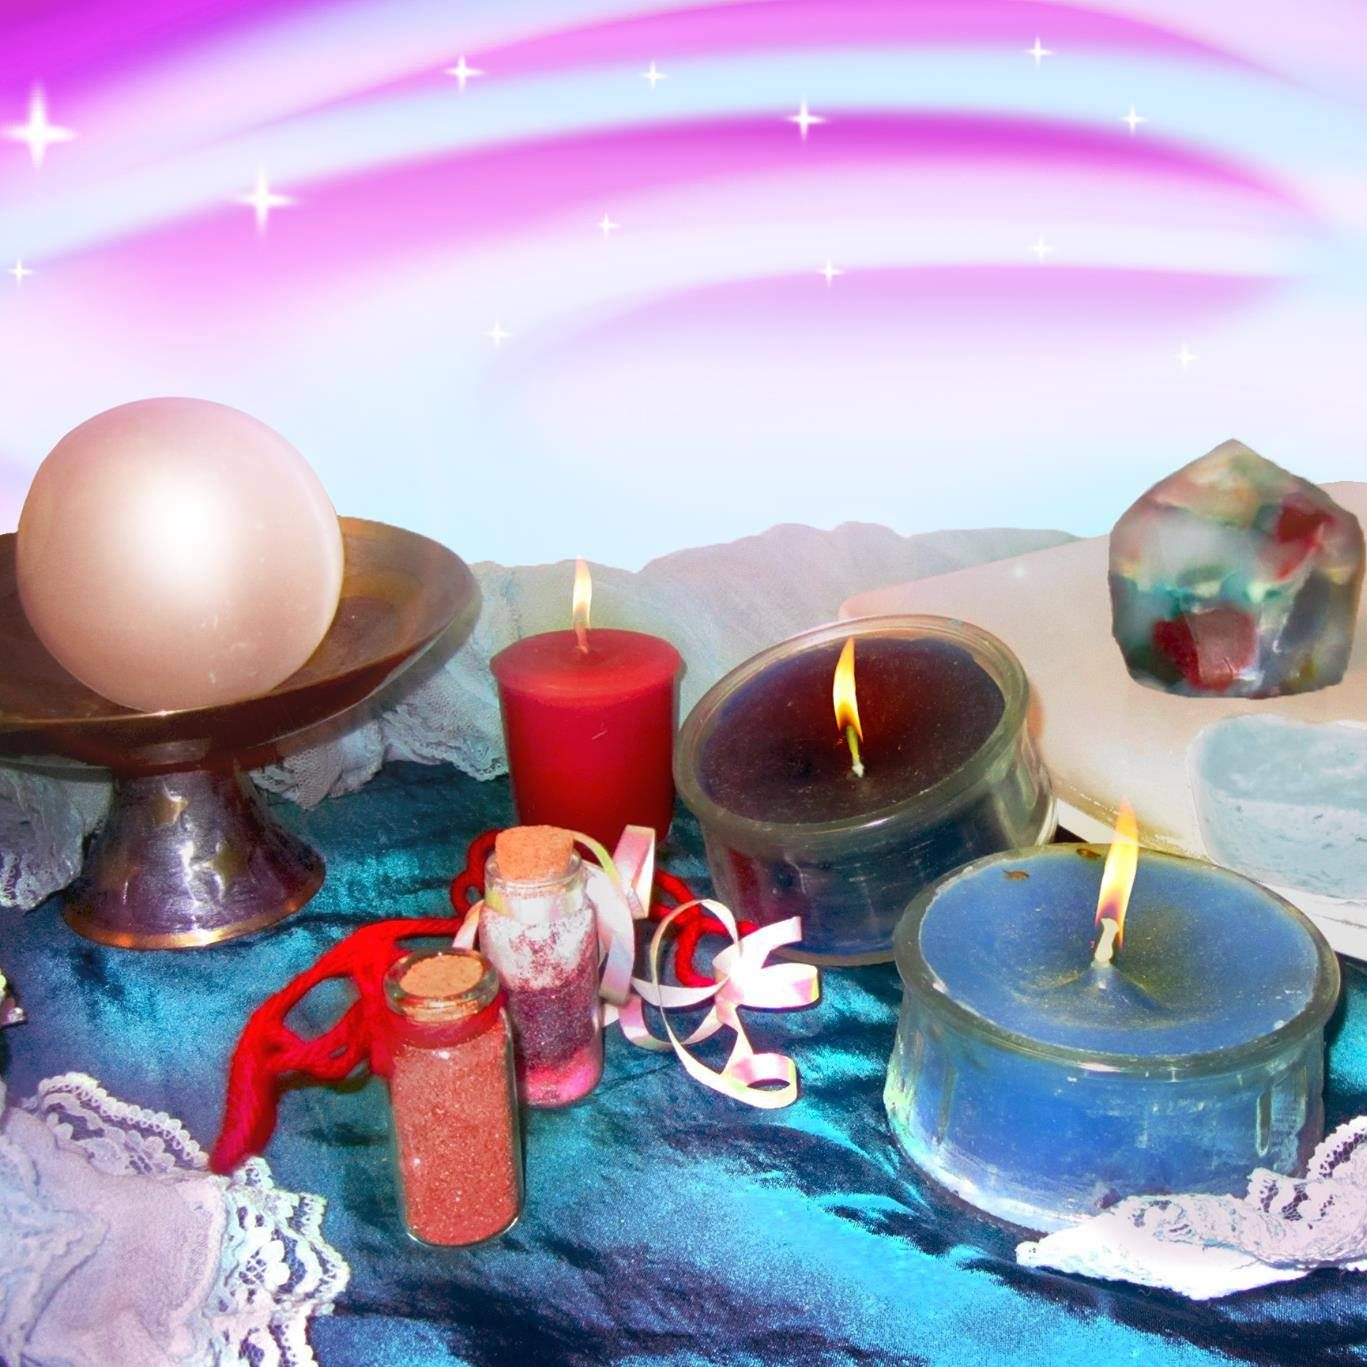 The image shuws a large pearl on a standx beside three tealights. one red, one black and the other blue. There are mini bottles filled with various colours of sand, and a galaxy rock in the back. The colours and shapes throughout the image are psychedelic..